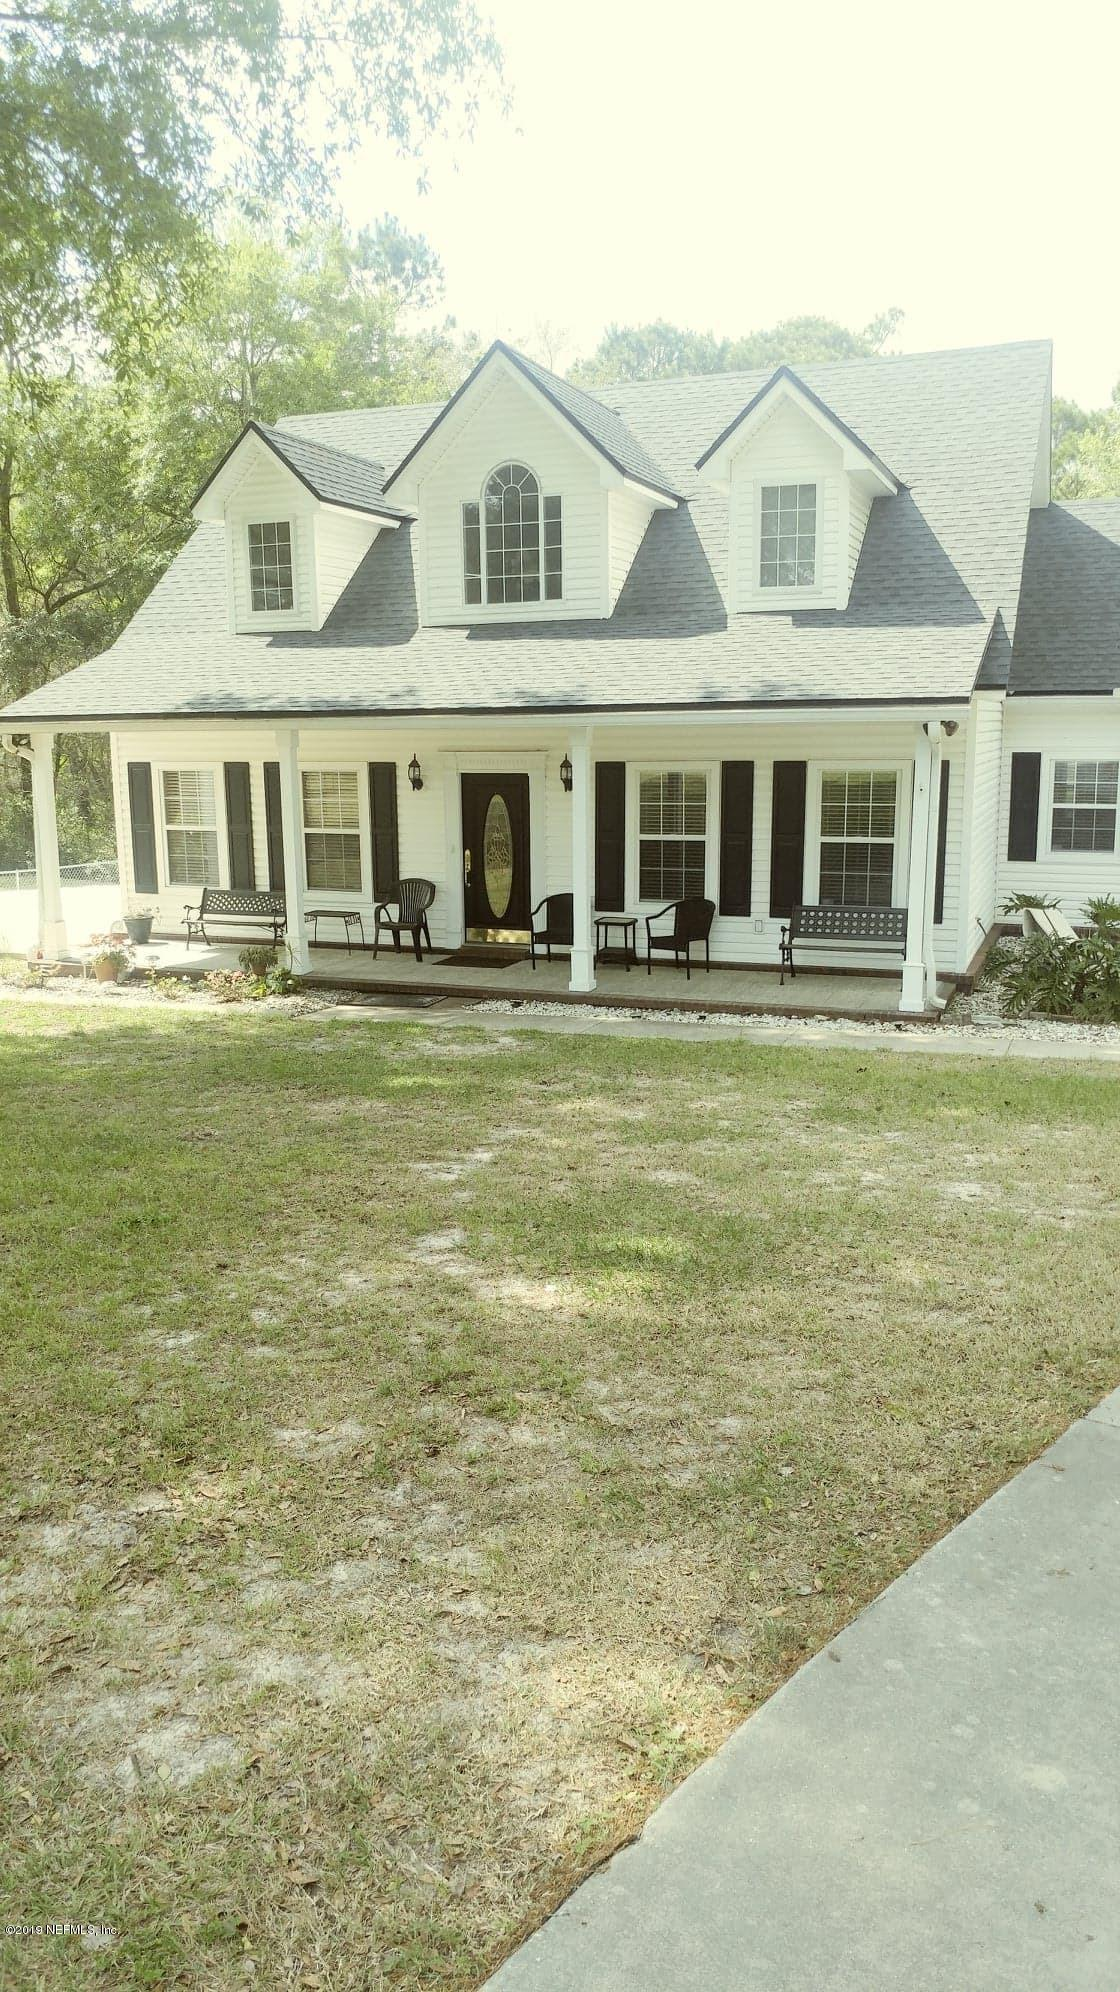 10730 SAINT MARYS, MACCLENNY, FLORIDA 32063, 4 Bedrooms Bedrooms, ,3 BathroomsBathrooms,Residential - single family,For sale,SAINT MARYS,984713